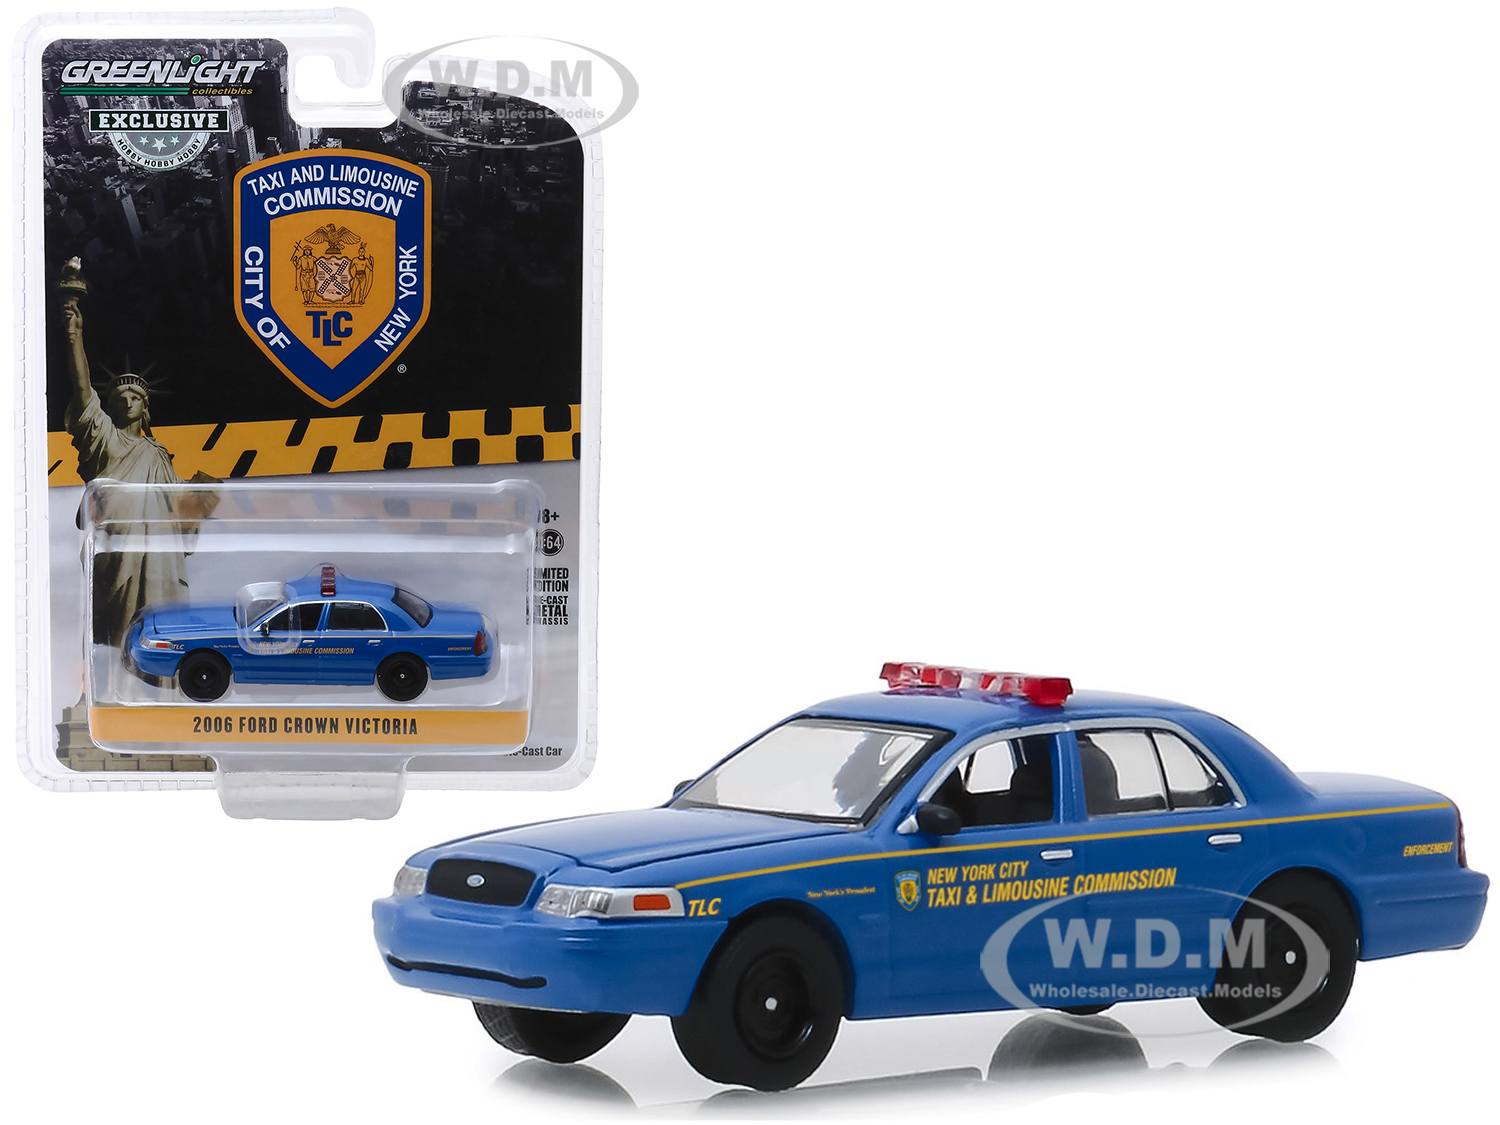 2006 Ford Crown Victoria New York City Taxi and Limousine Commission (TLC) Blue Hobby Exclusive 1/64 Diecast Model Car by Greenlight - from $6.19